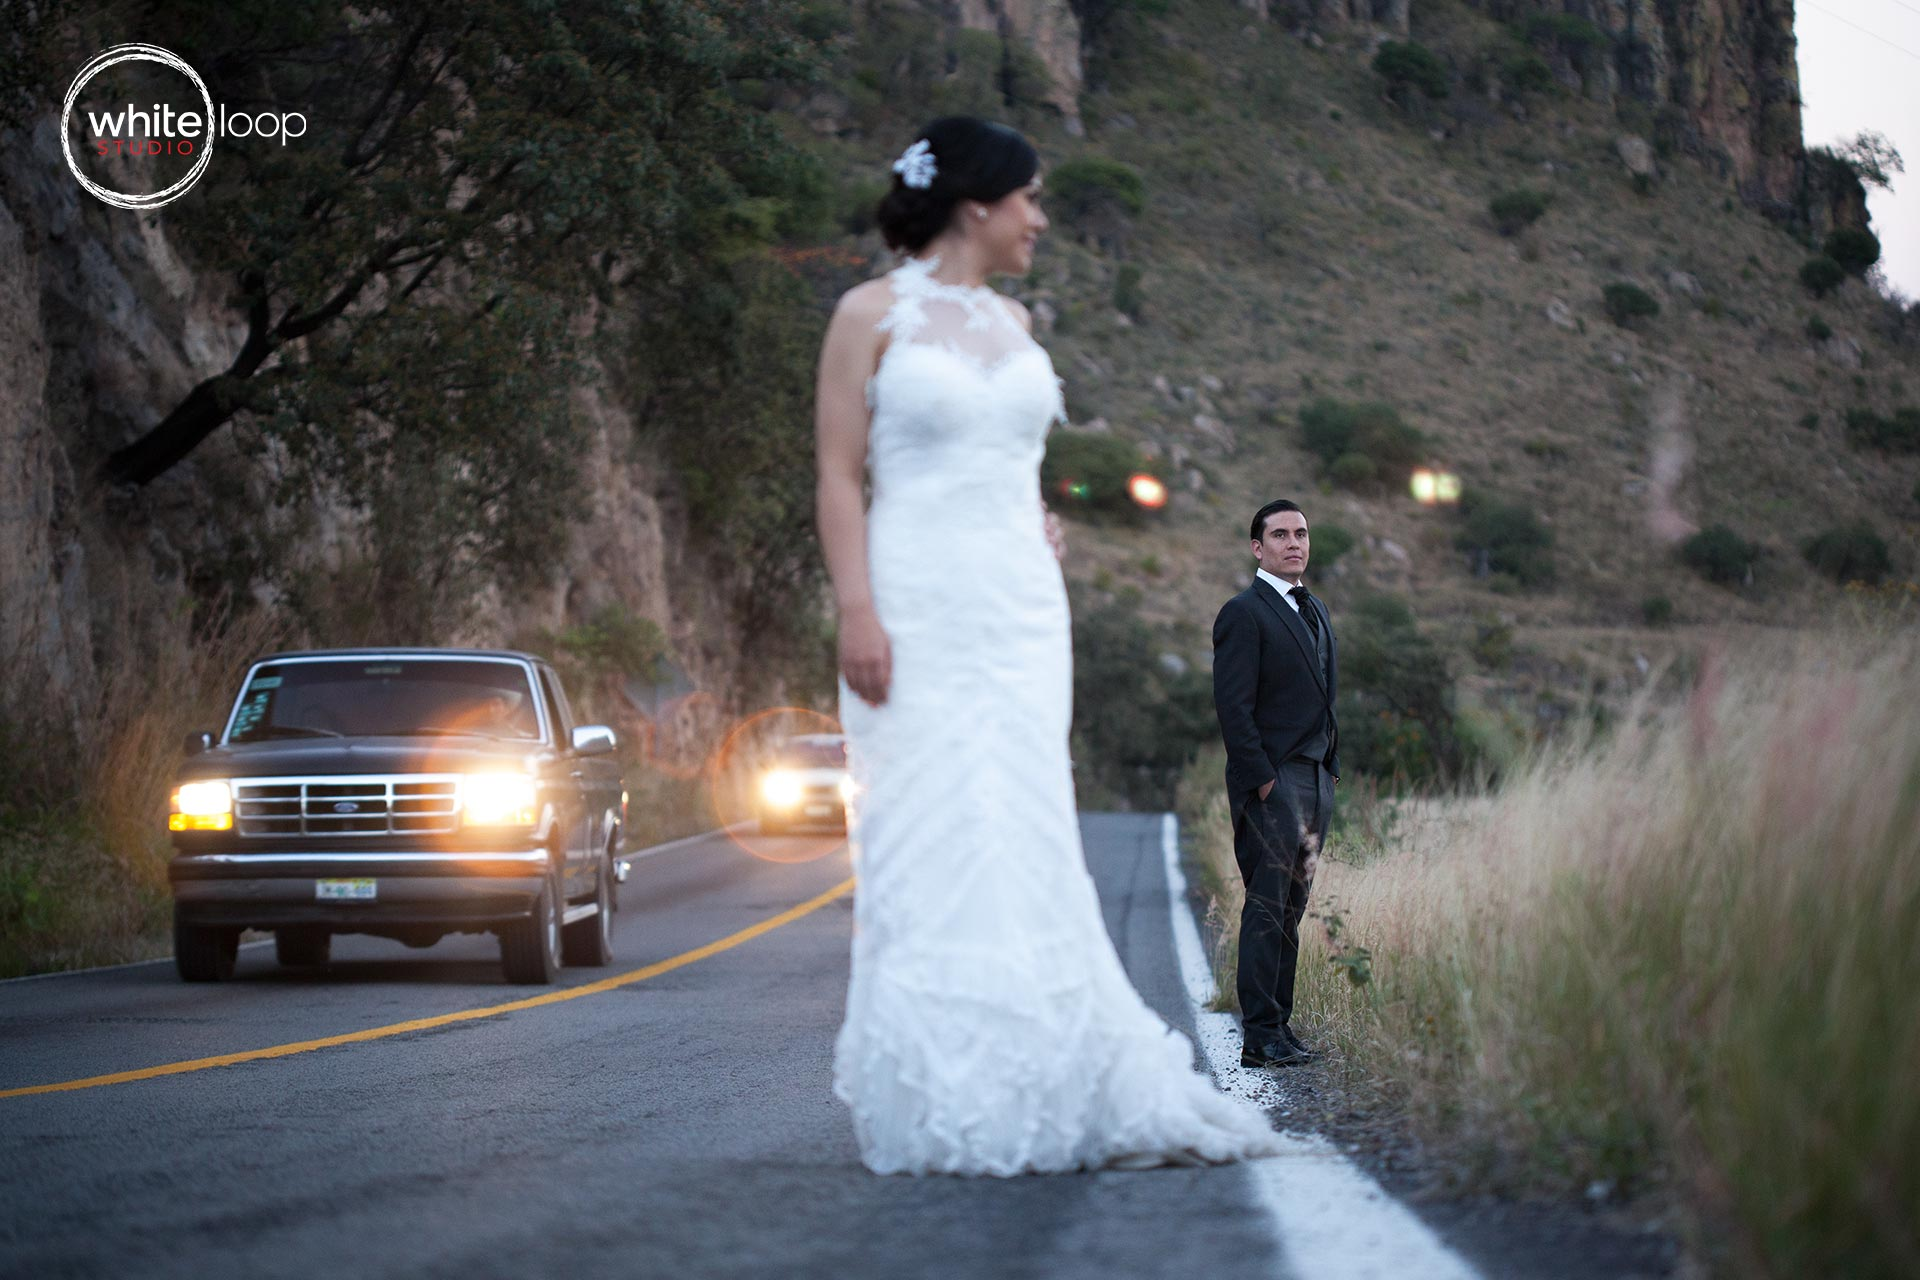 In the middle of the highway the bride and groom are looking each other smiling and escaping for a little moment.